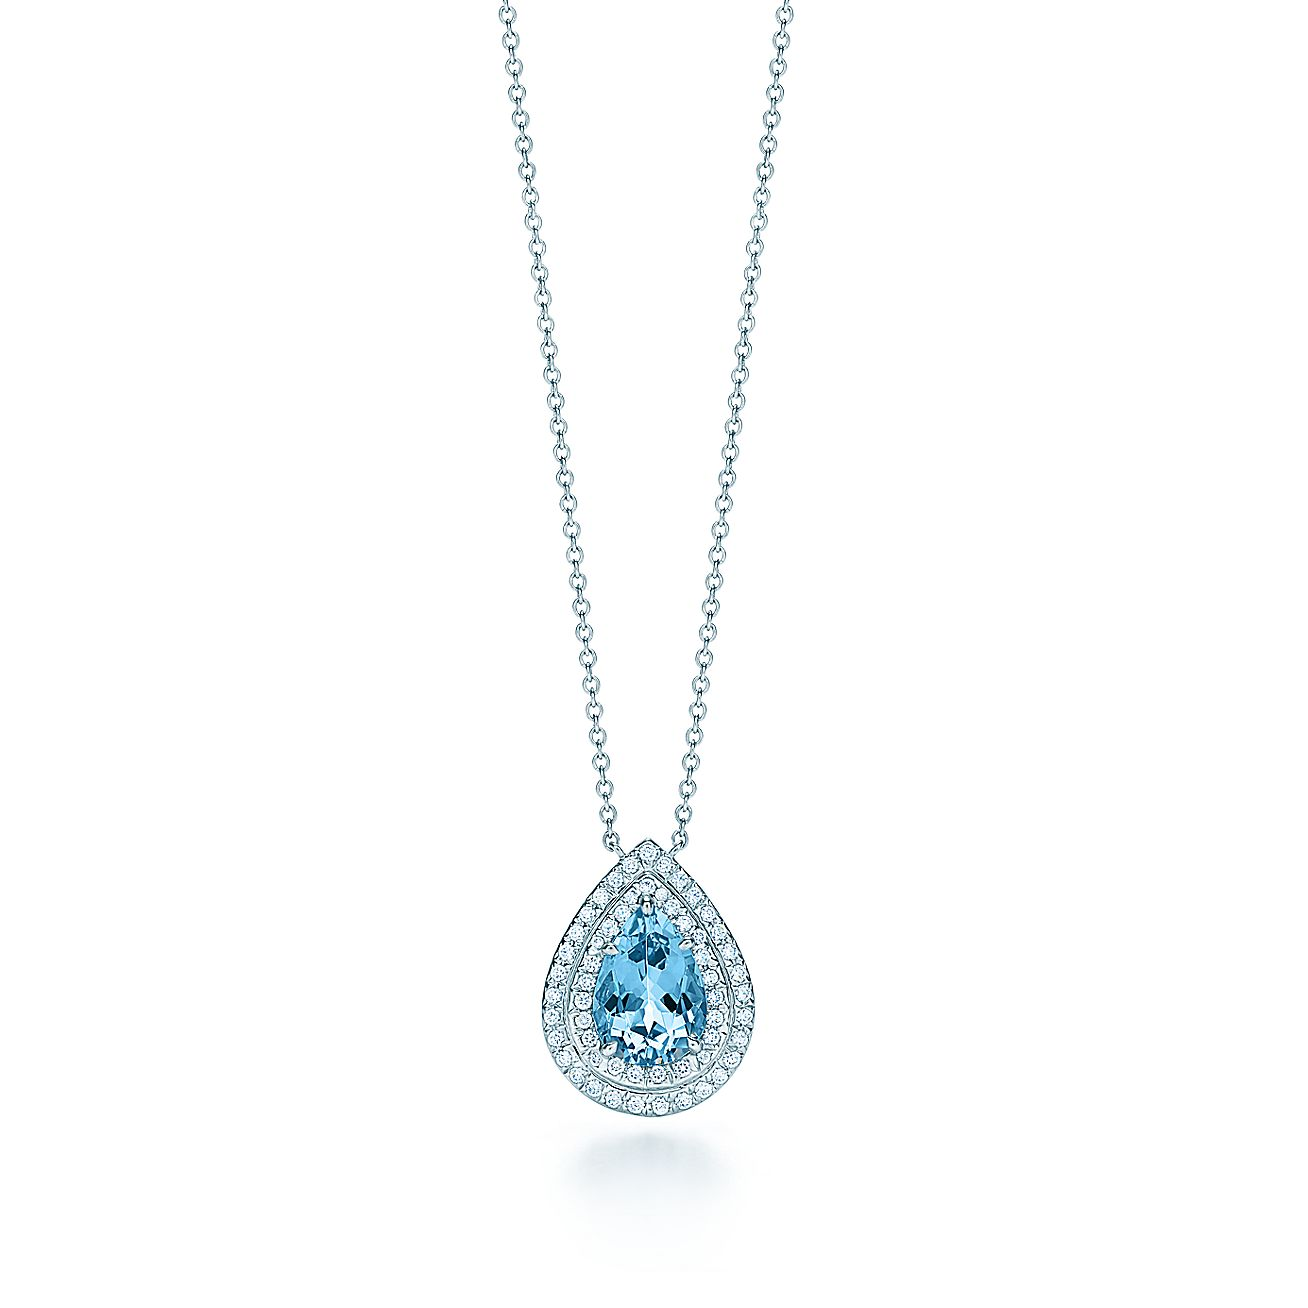 Tiffany SolesteR Pendant In Platinum With An Aquamarine And Diamonds